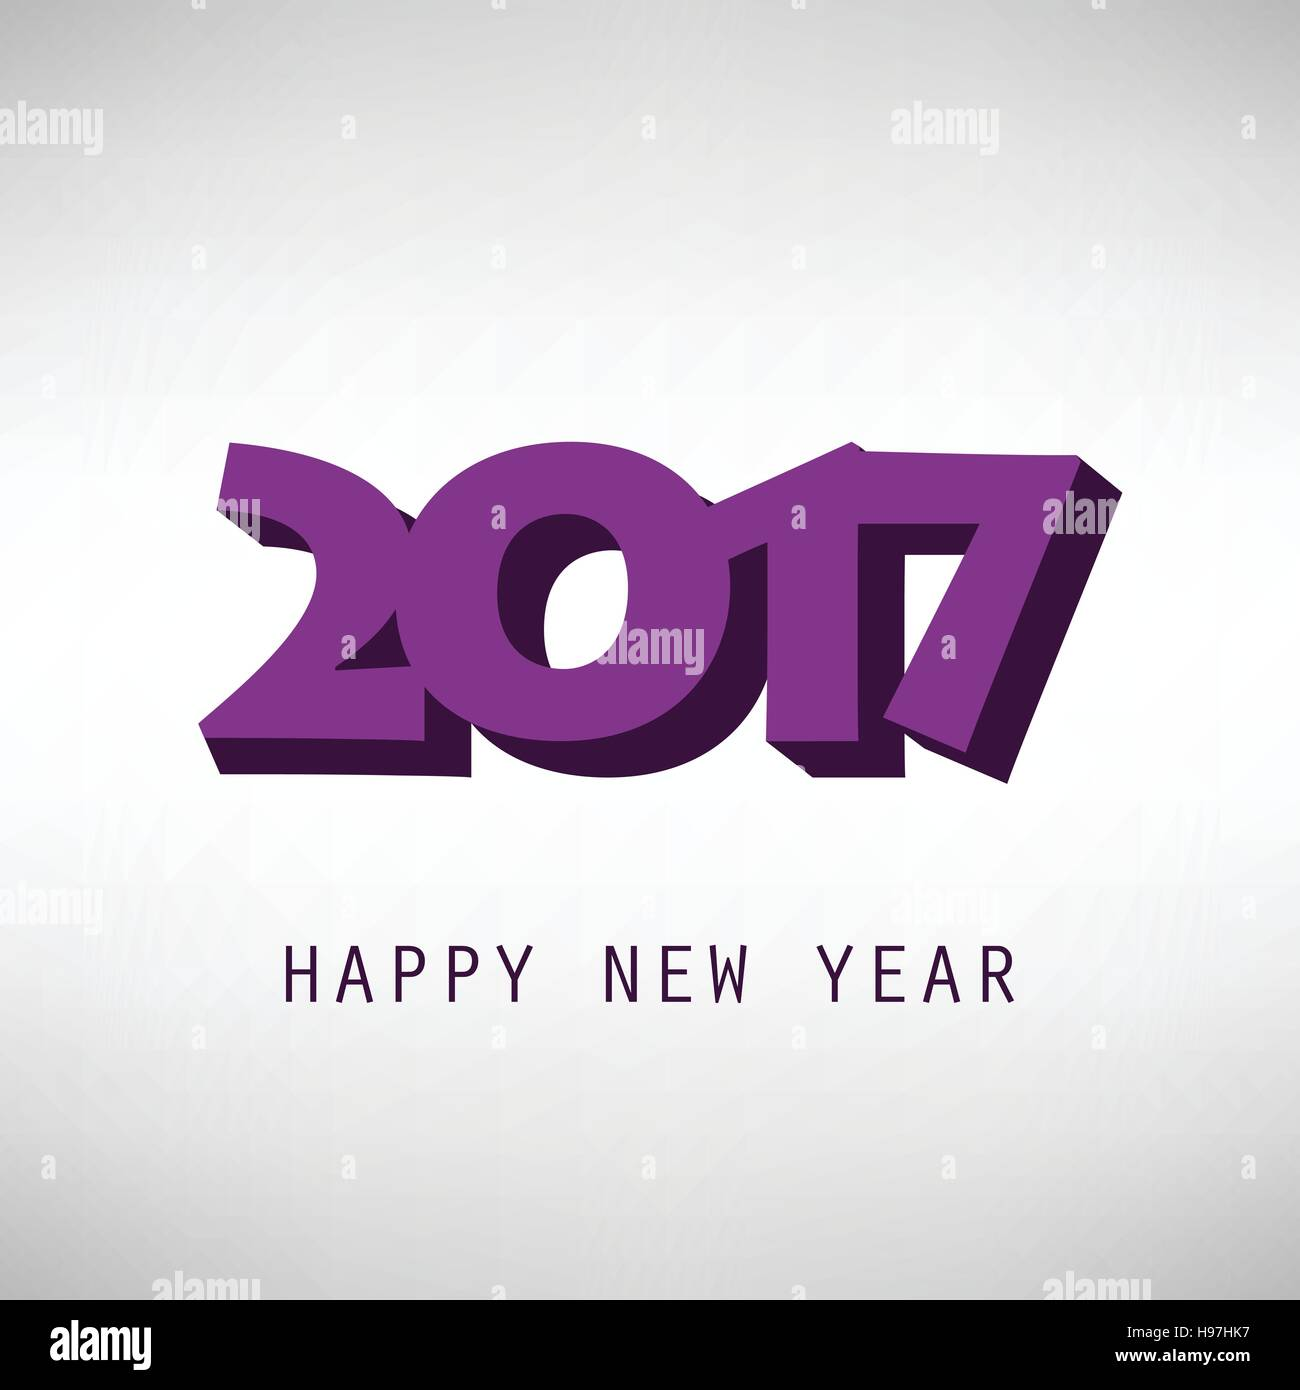 best wishes simple new year card cover or background design template 2017